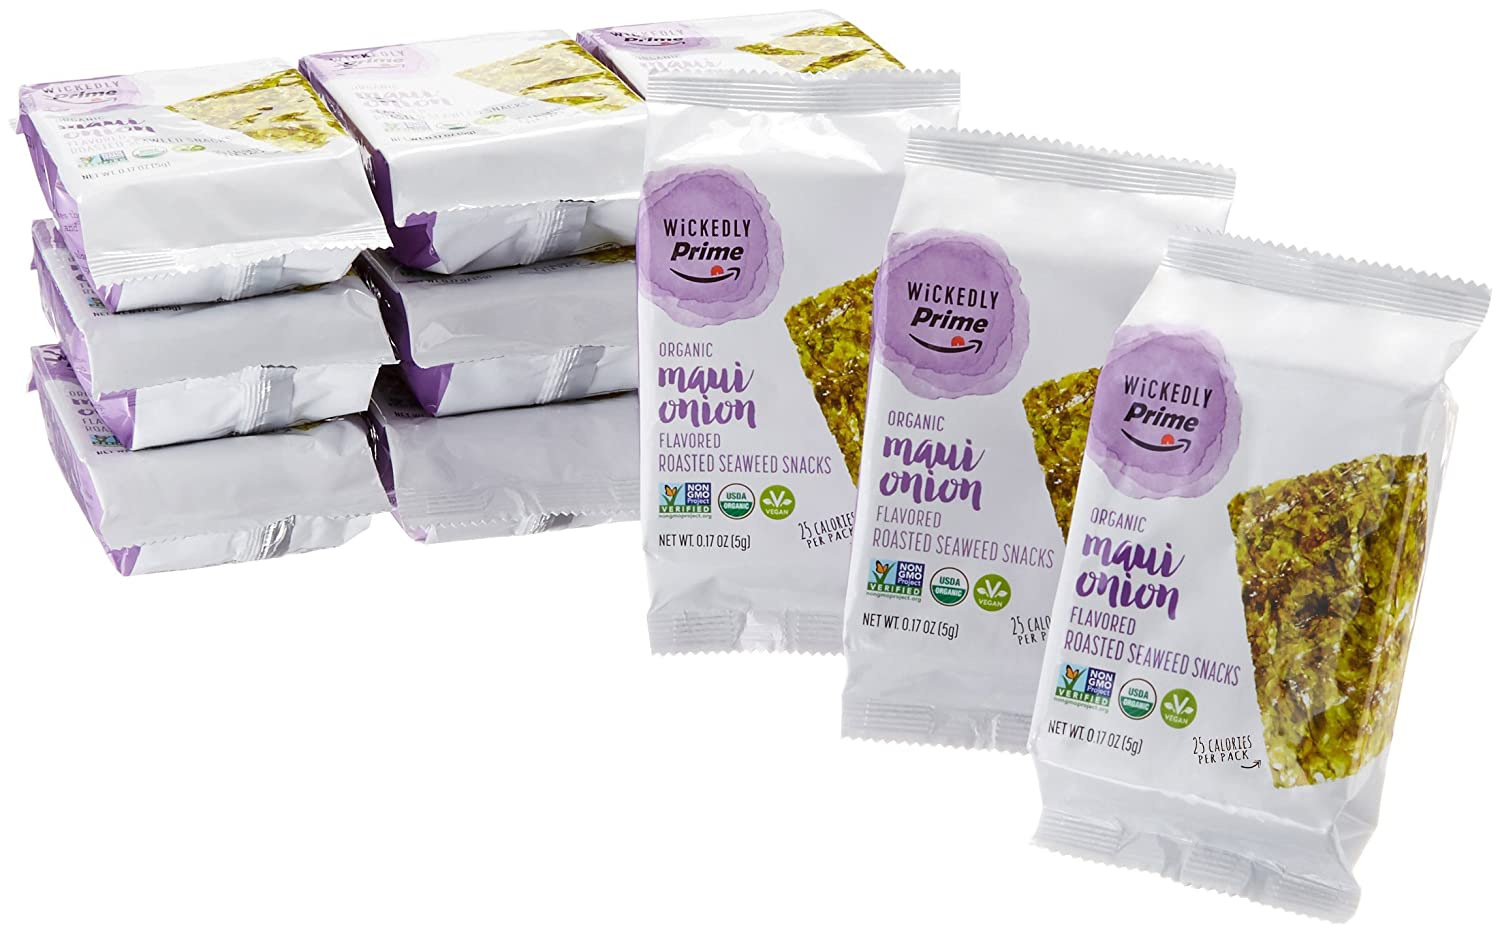 Wickedly Prime Organic Roasted Seaweed Snacks, Maui Onion Flavored, 0.17 Ounce (Pack of 12)